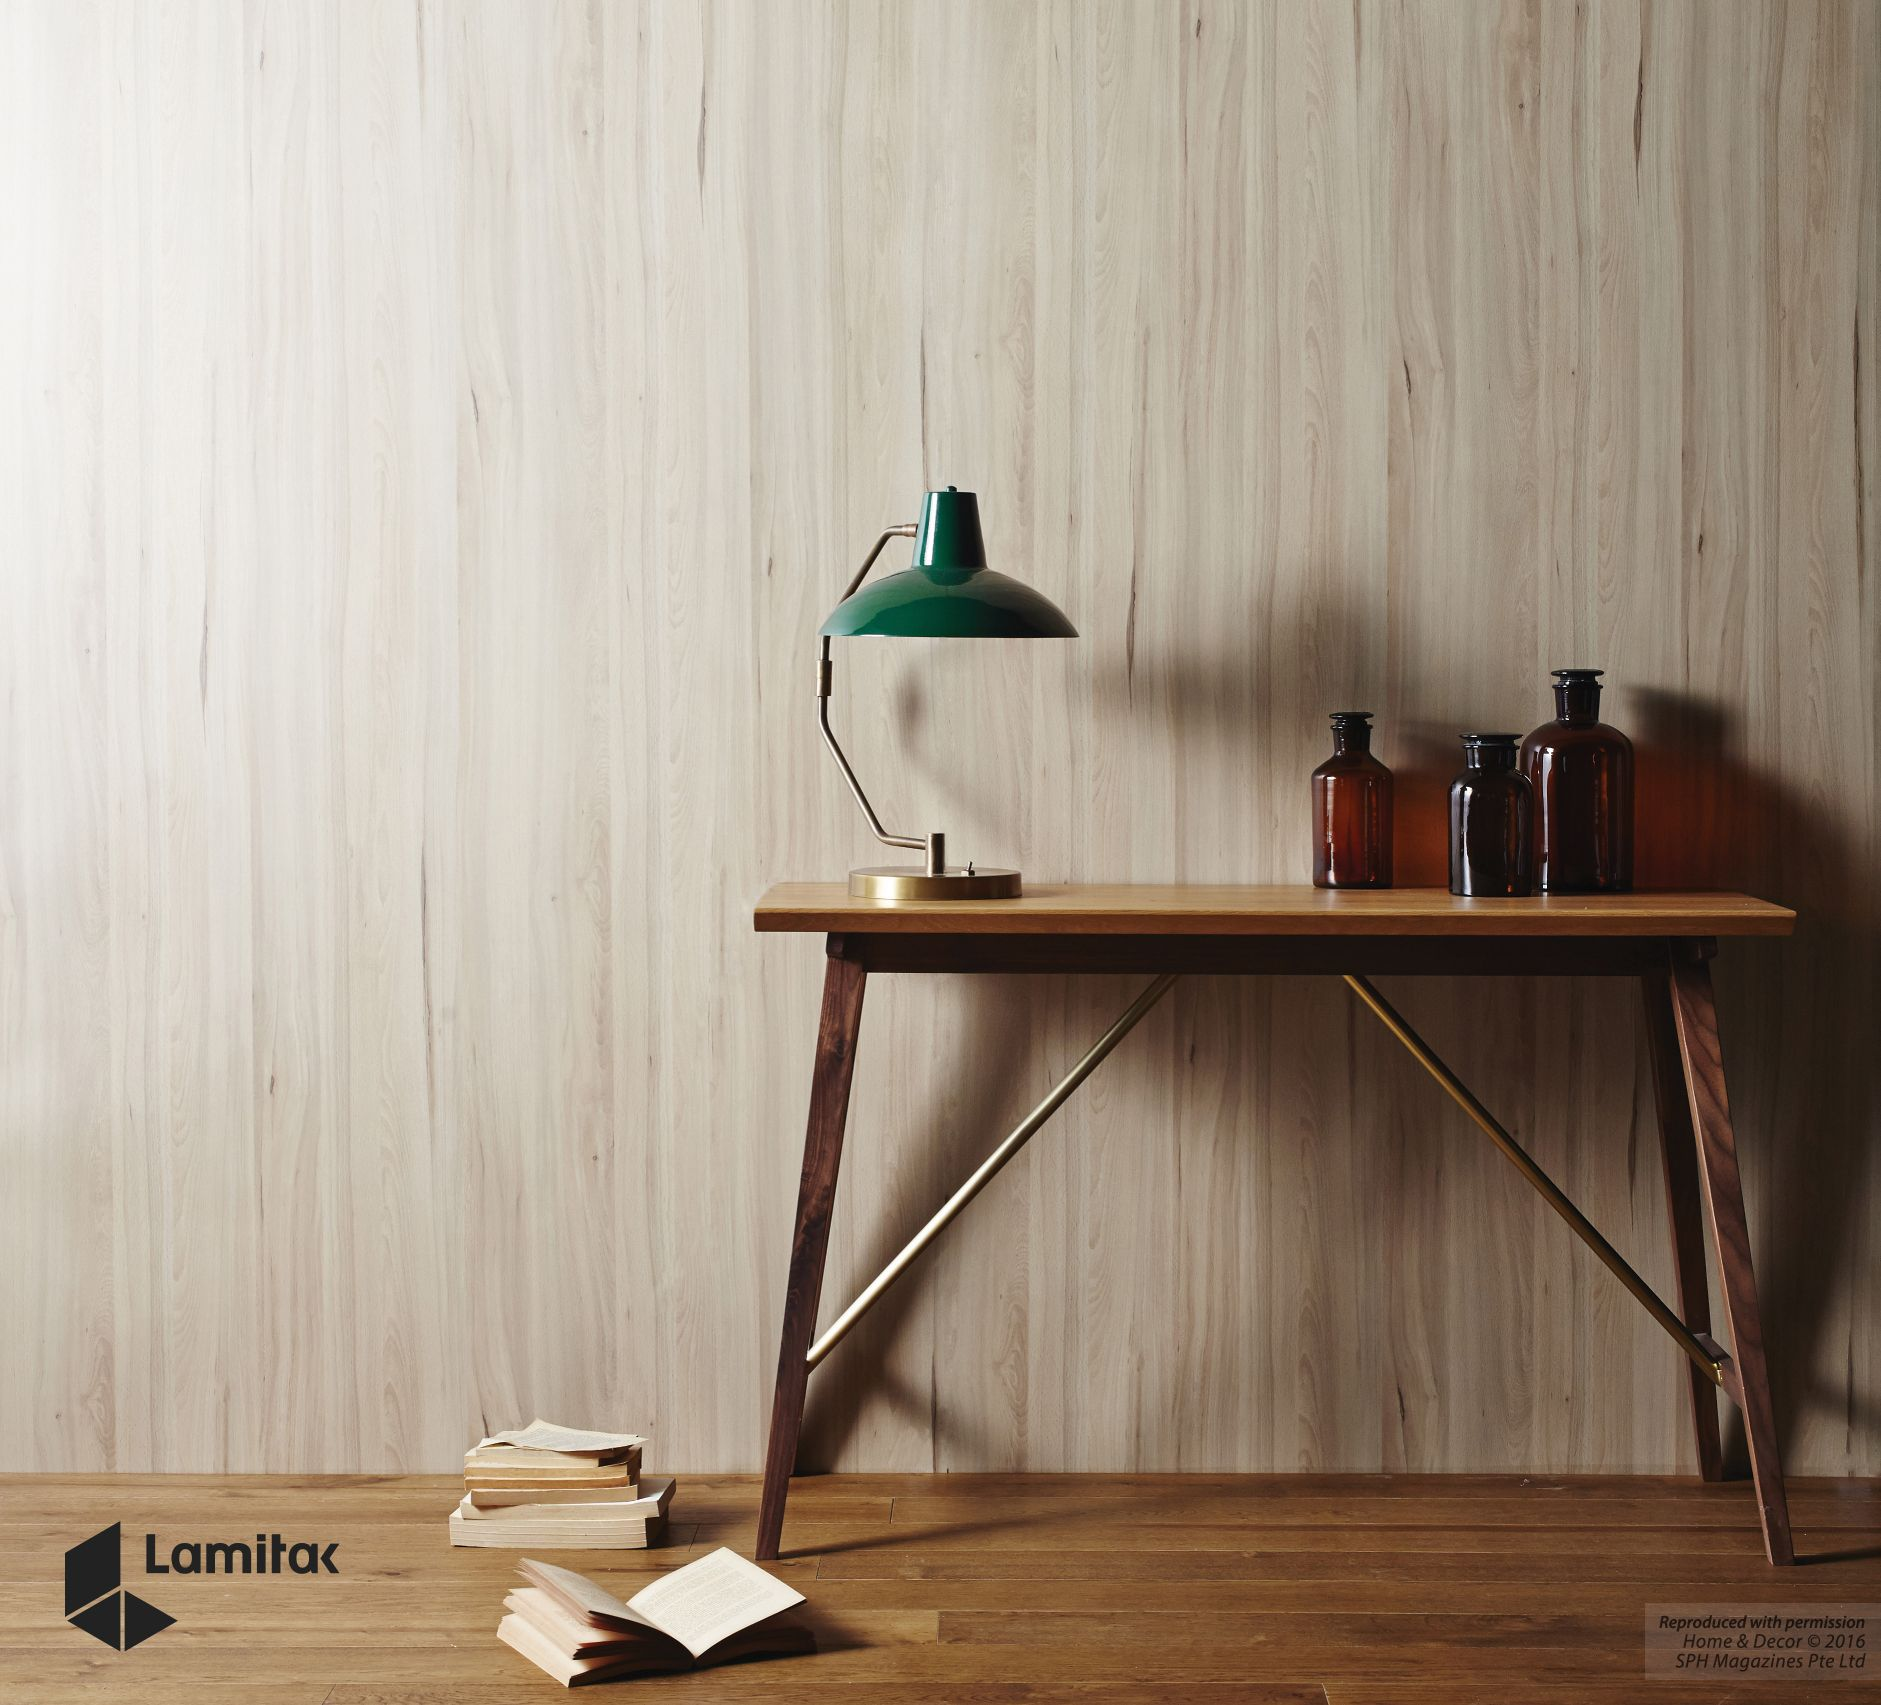 when time stood still featuring aki aomori beech wy 1281d from